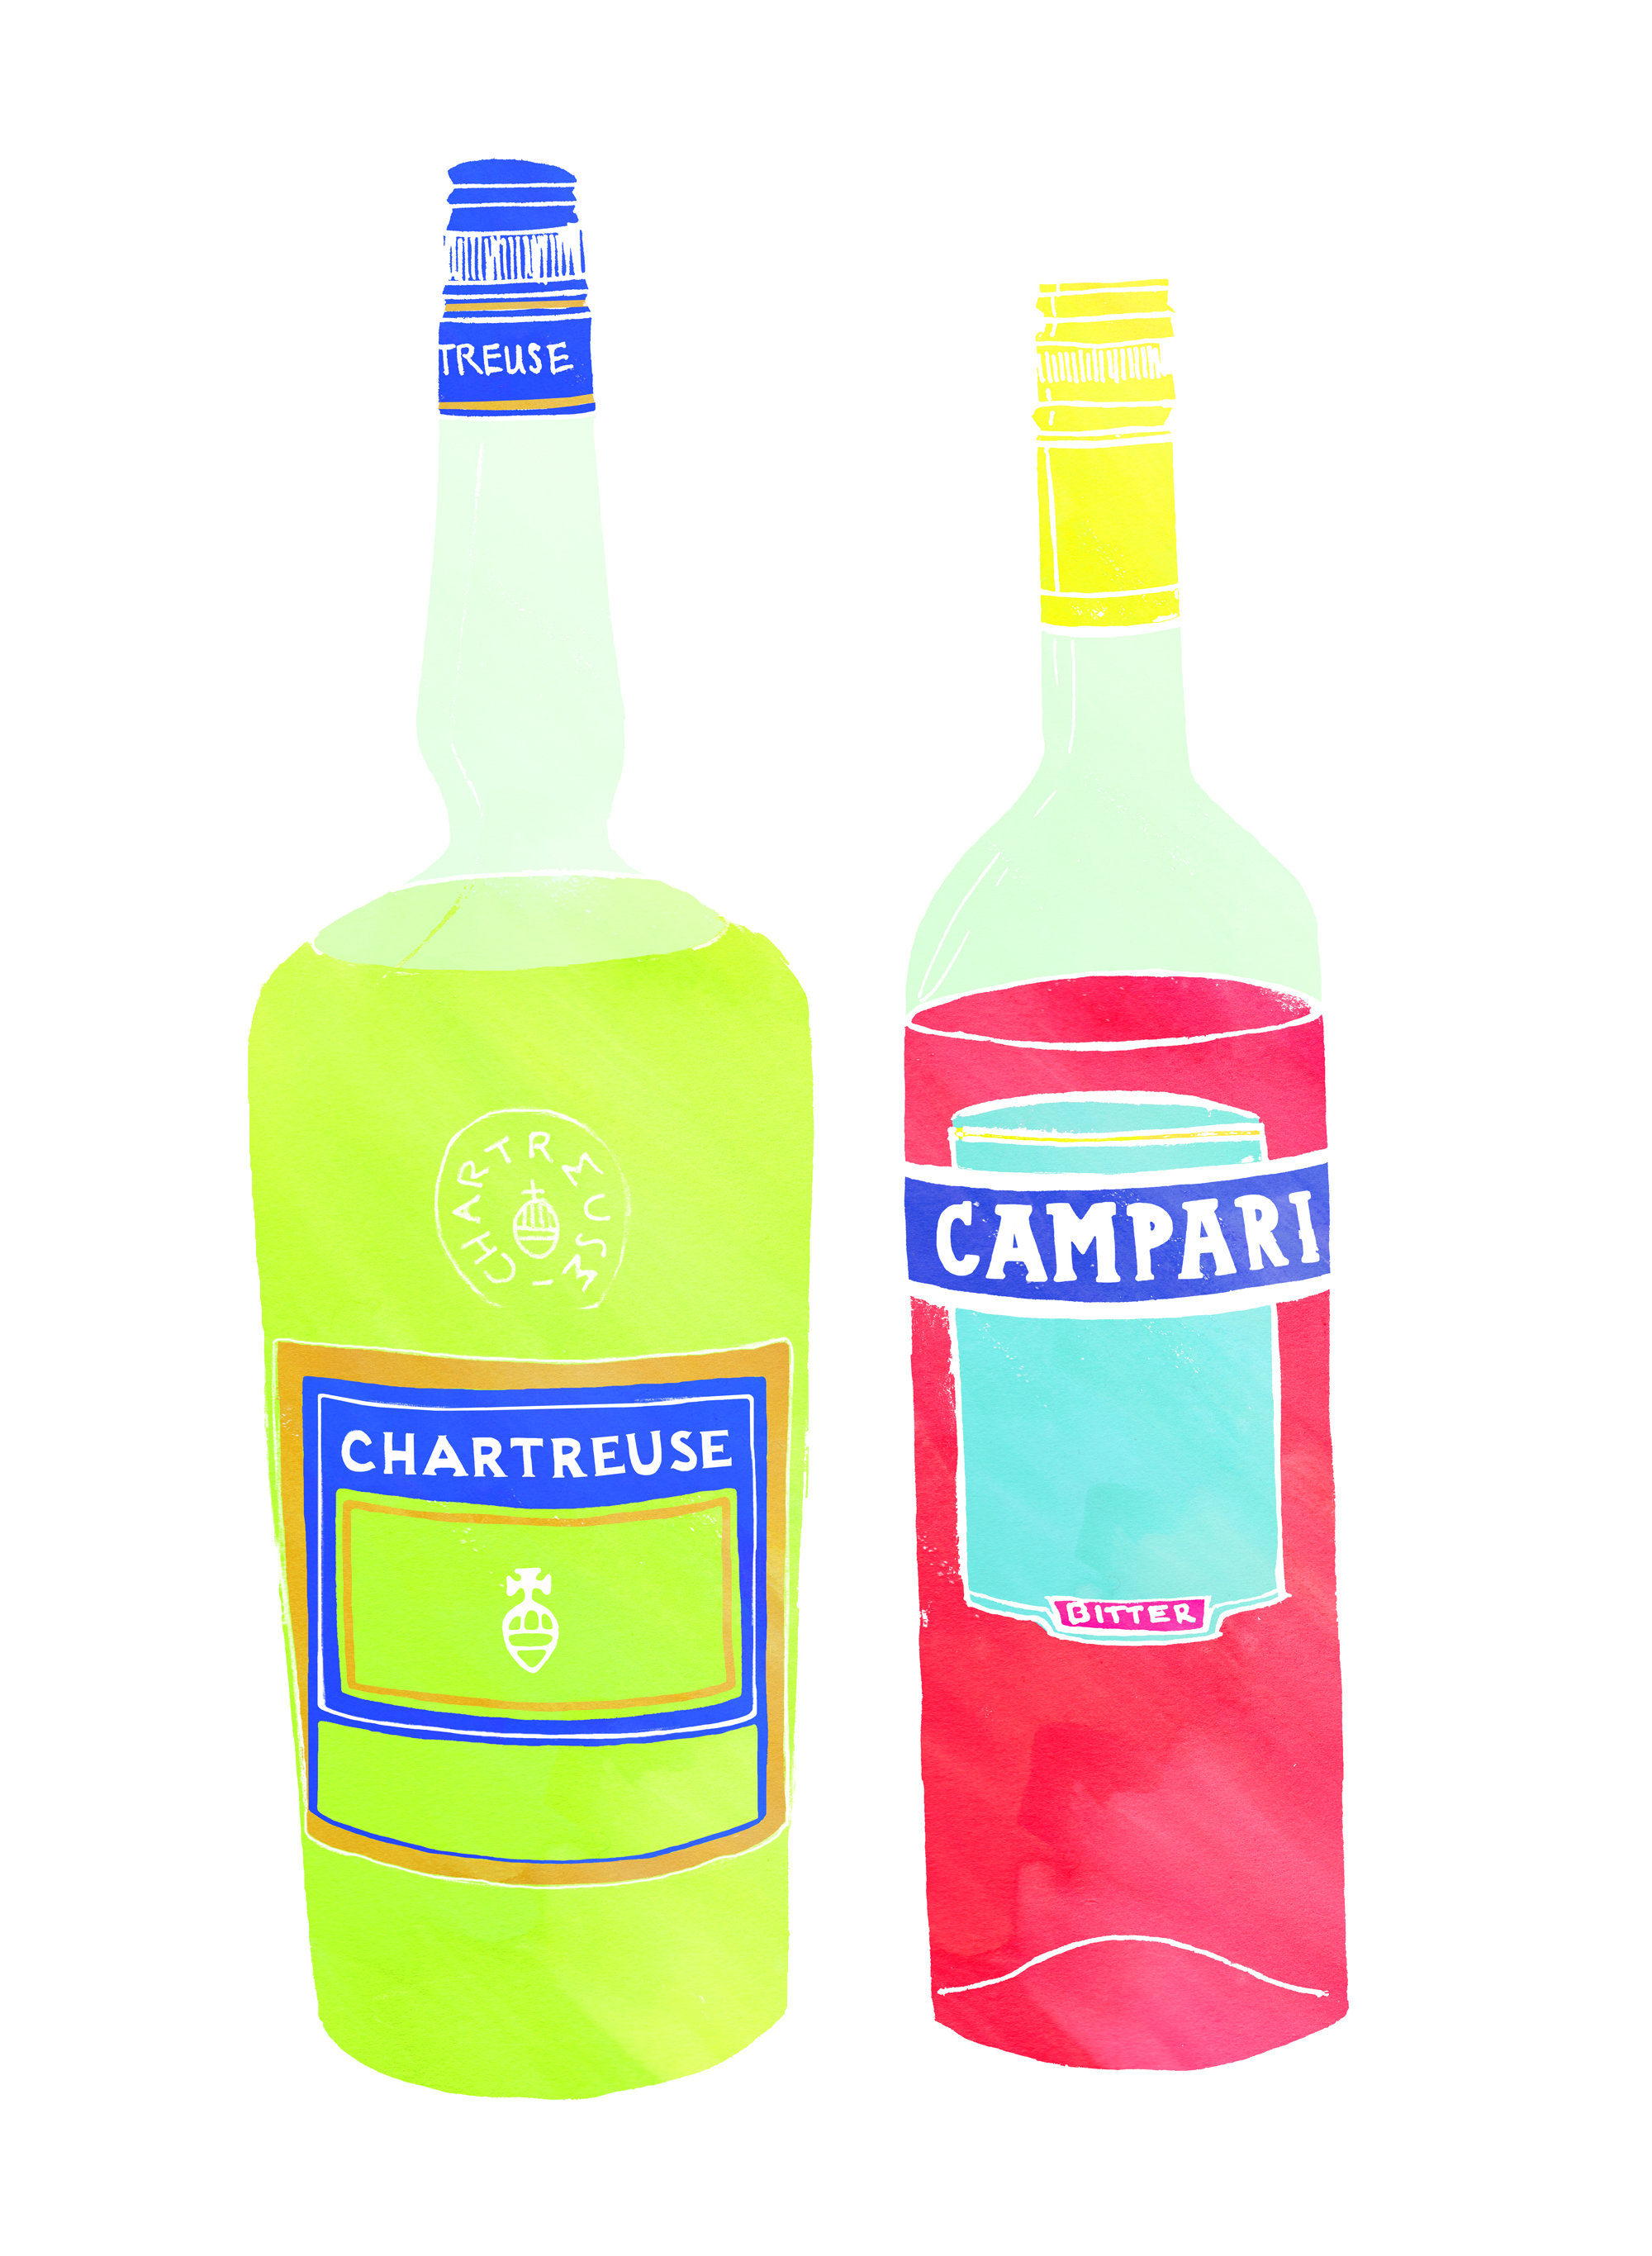 chartreuse-campari-colored-bright.jpg